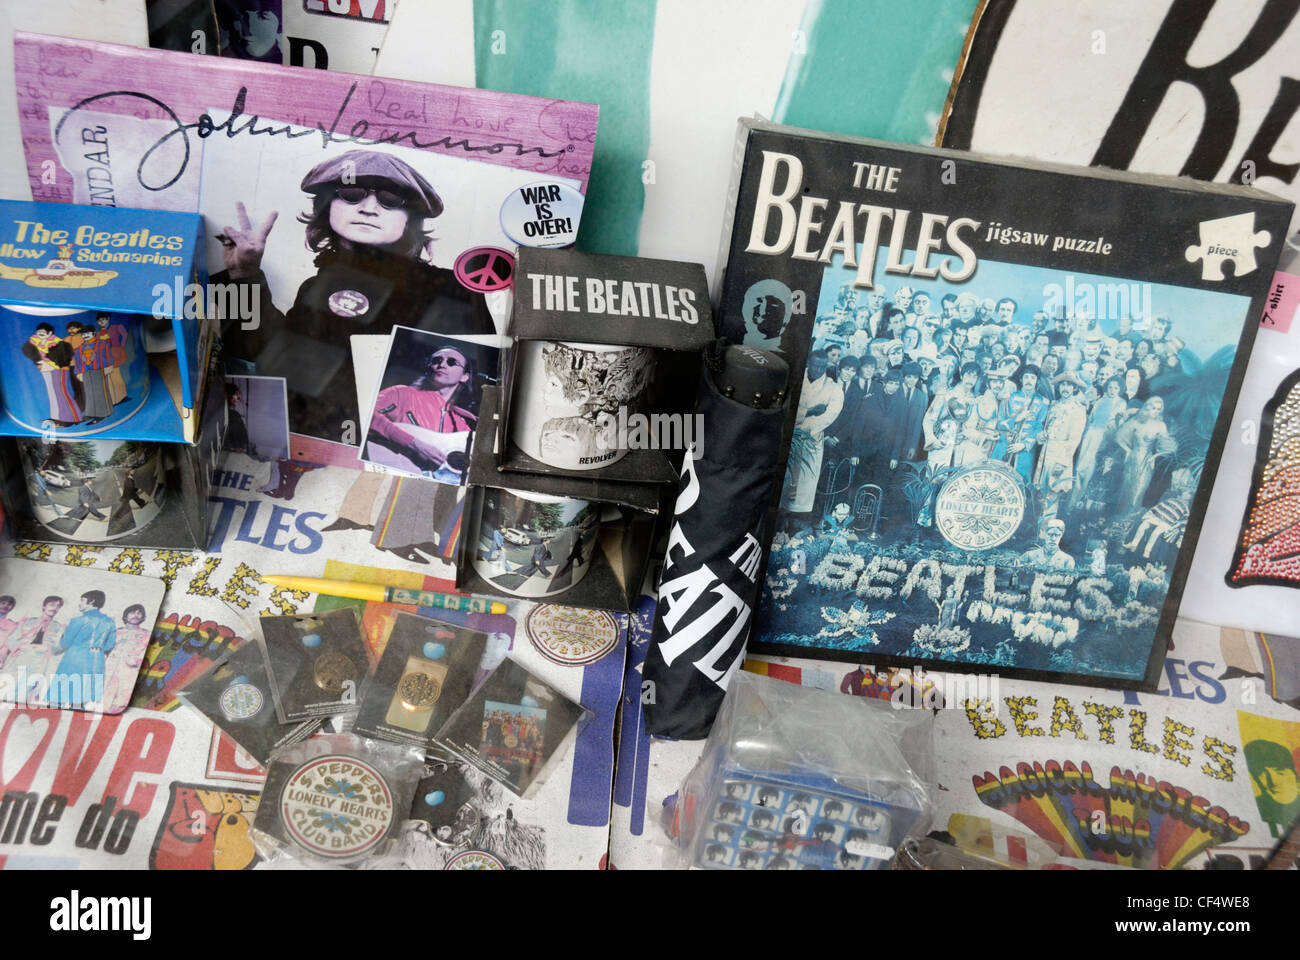 A close up of Beatles memorabilia in a shop window in Baker Street. - Stock Image